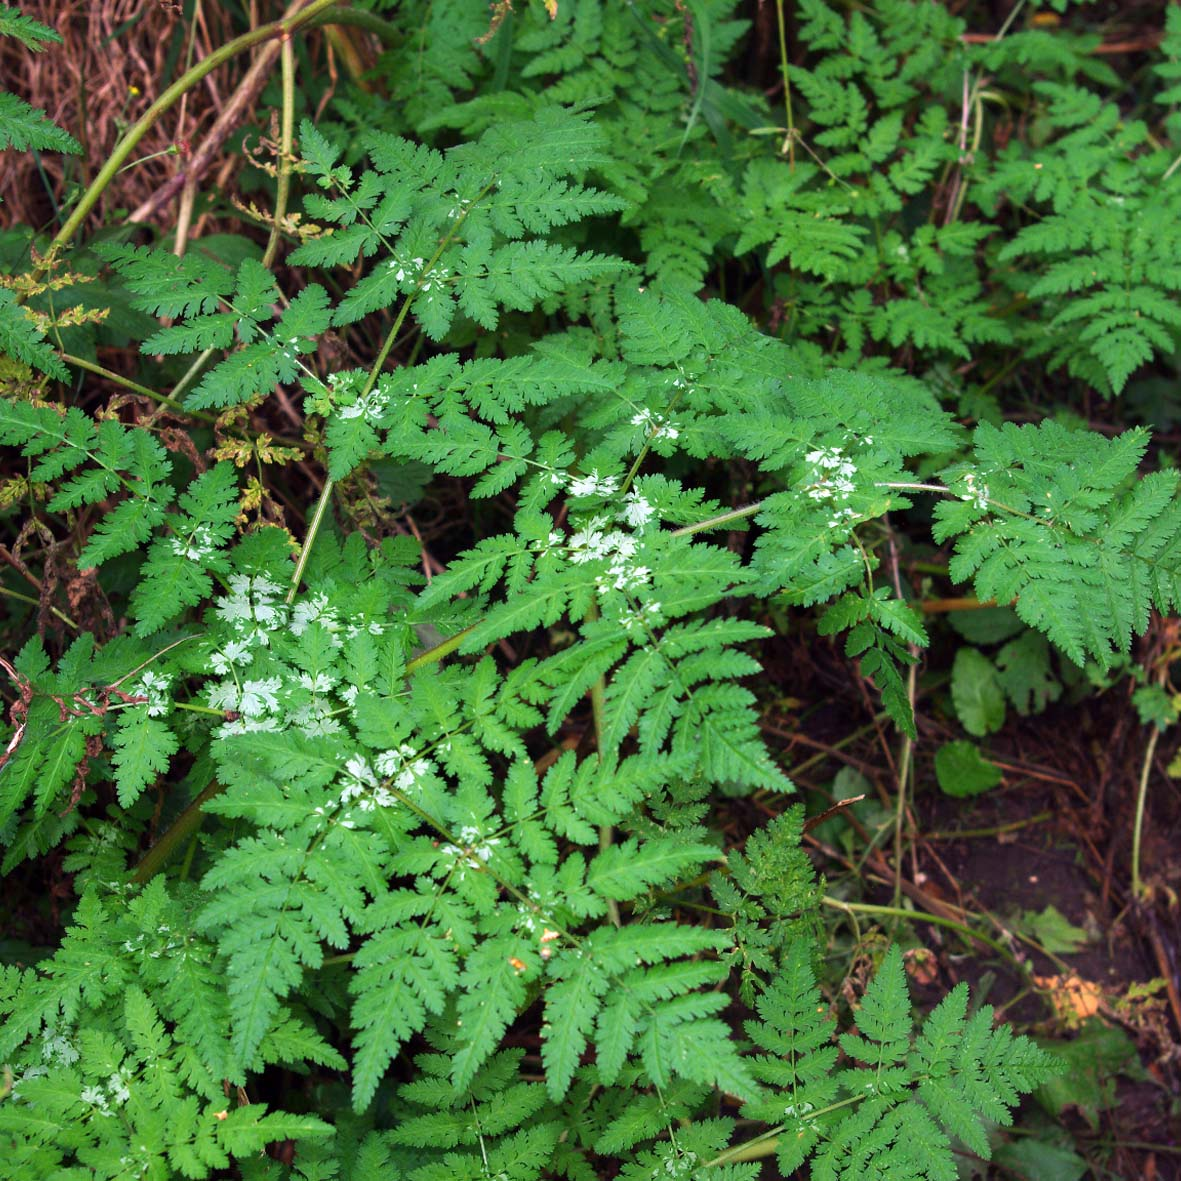 Sweet Cicely leaves with characteristic marks